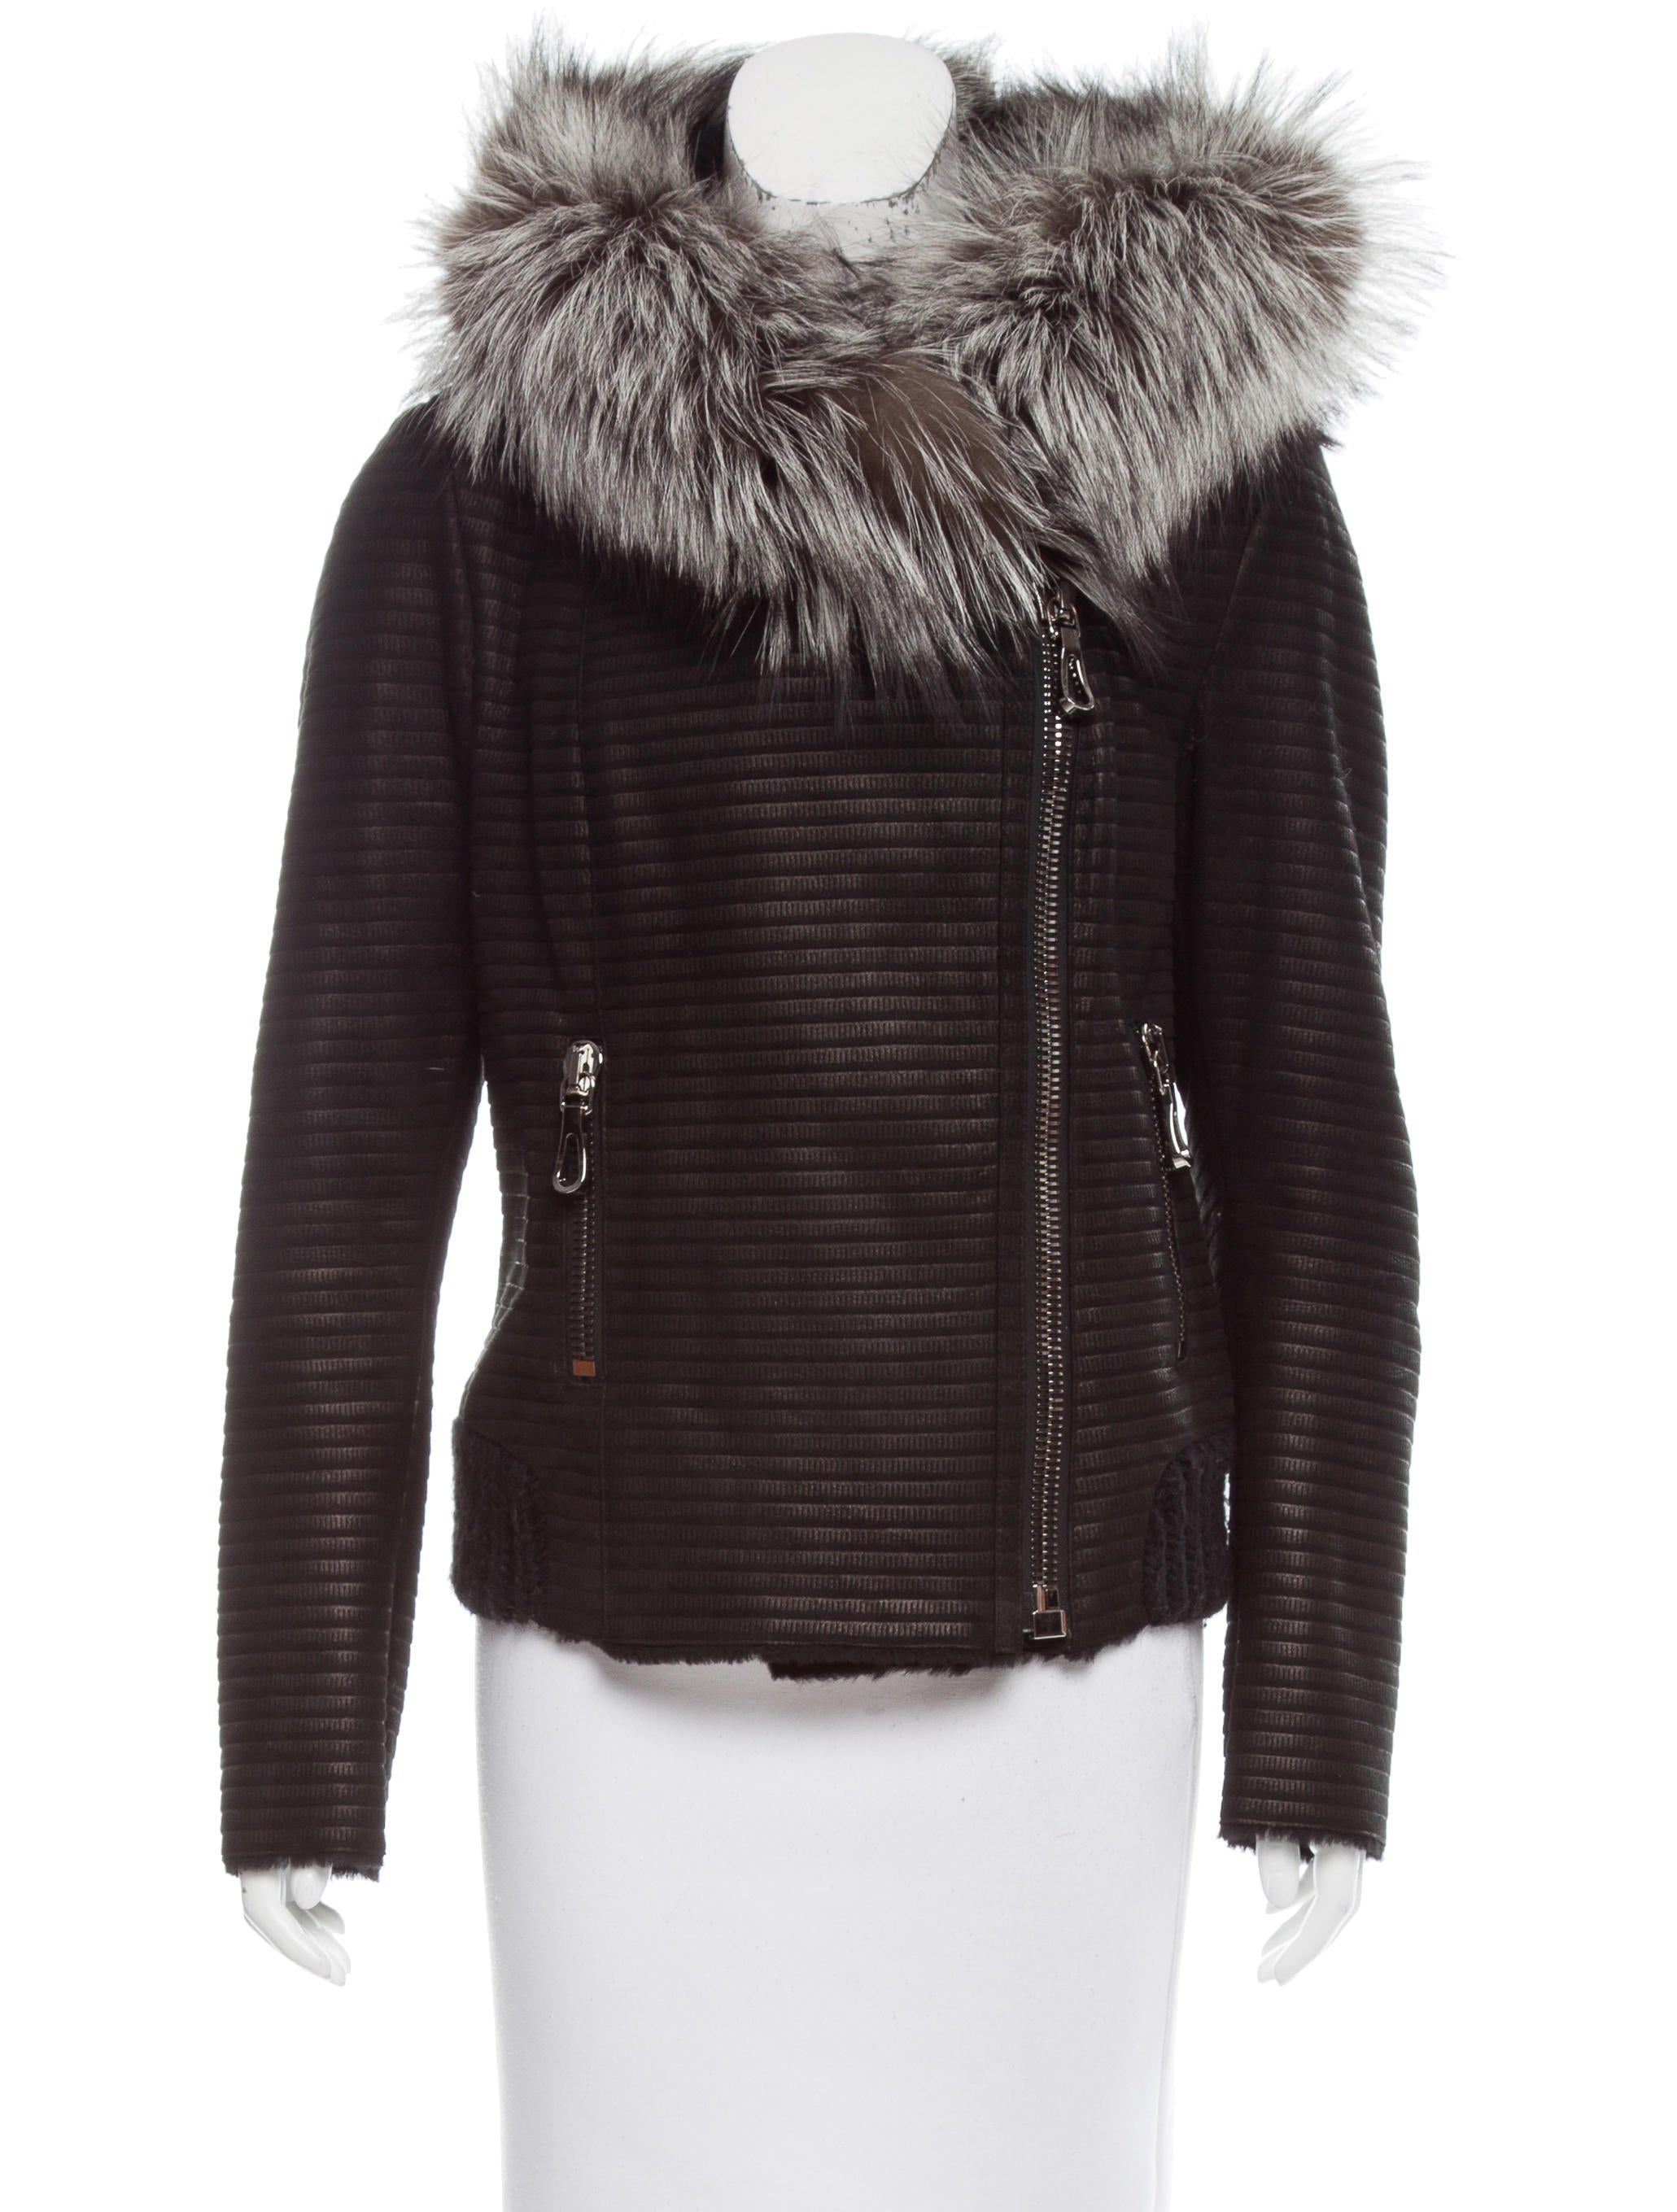 Find a great selection of down & puffer jackets for women at humorrmundiall.ga Shop from top brands like Patagonia, The North Face, Canada Goose & more. Free shipping & returns.